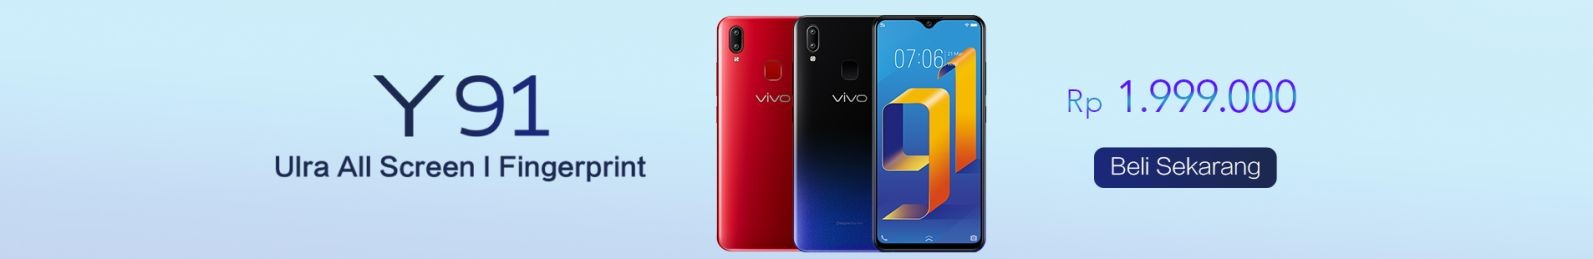 Vivo Indonesia